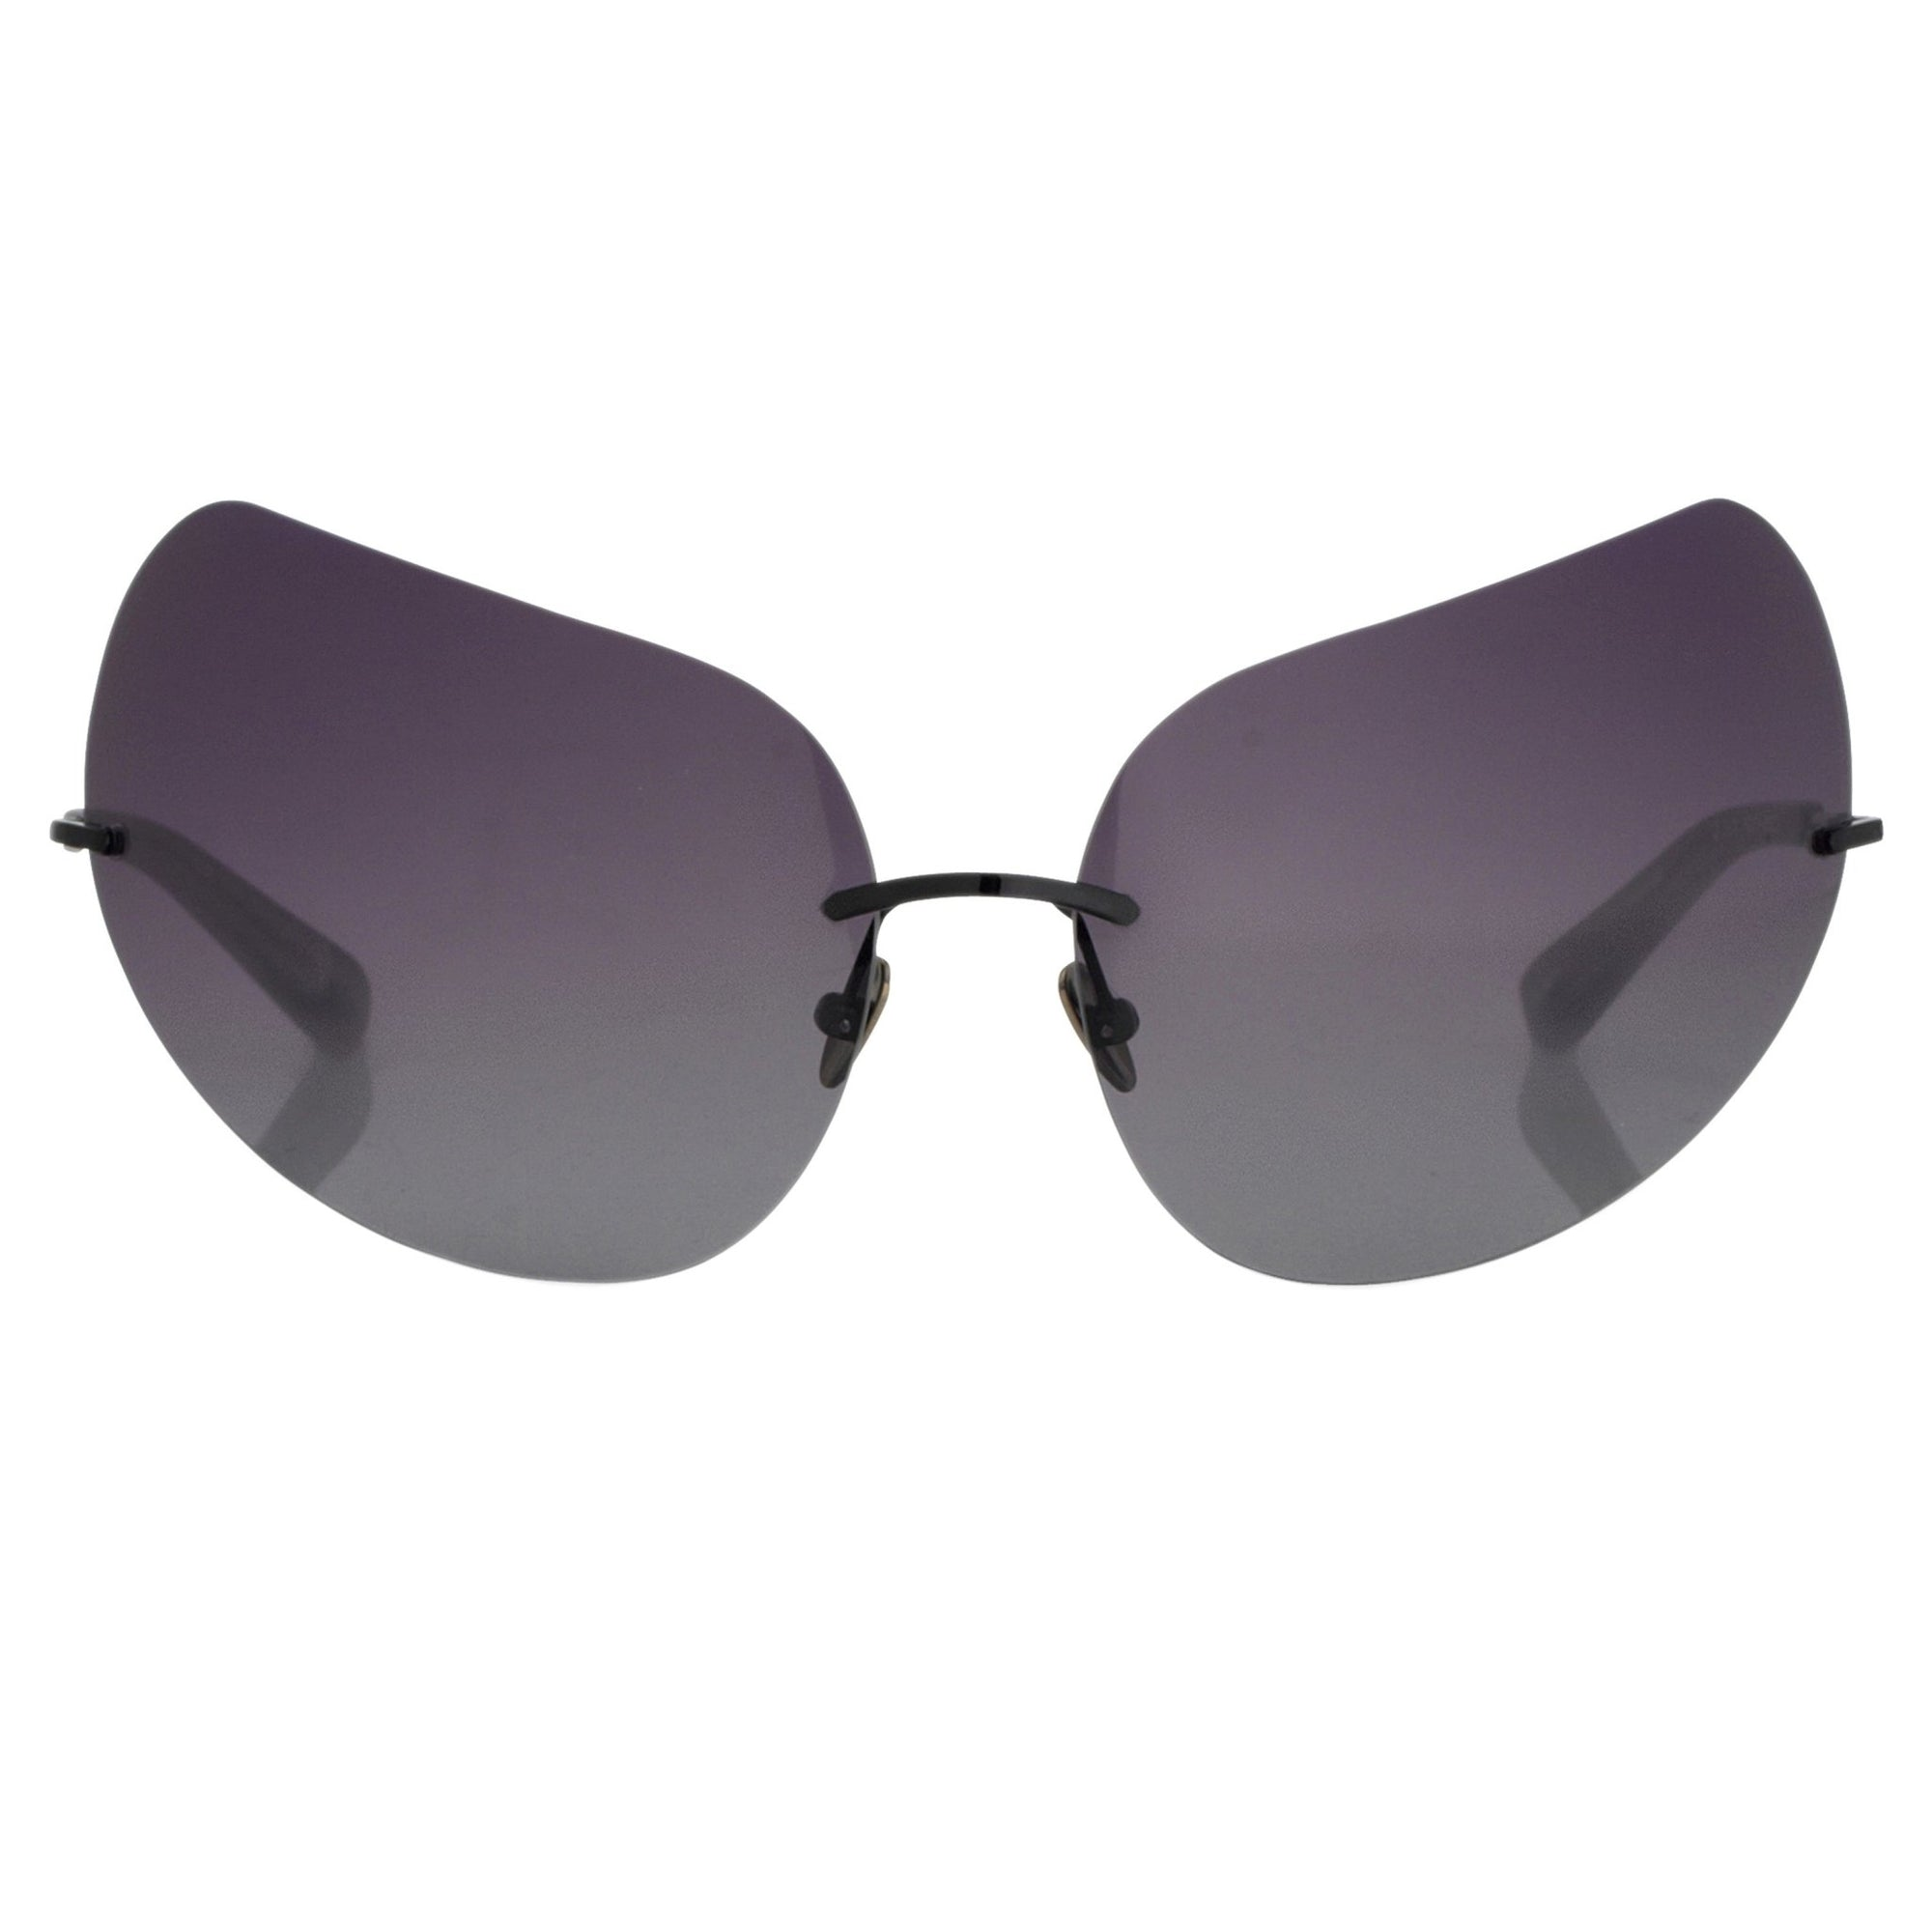 Todd Lynn Sunglasses Special Frame Black and Grey Lenses - TL5C1SUN - Watches & Crystals